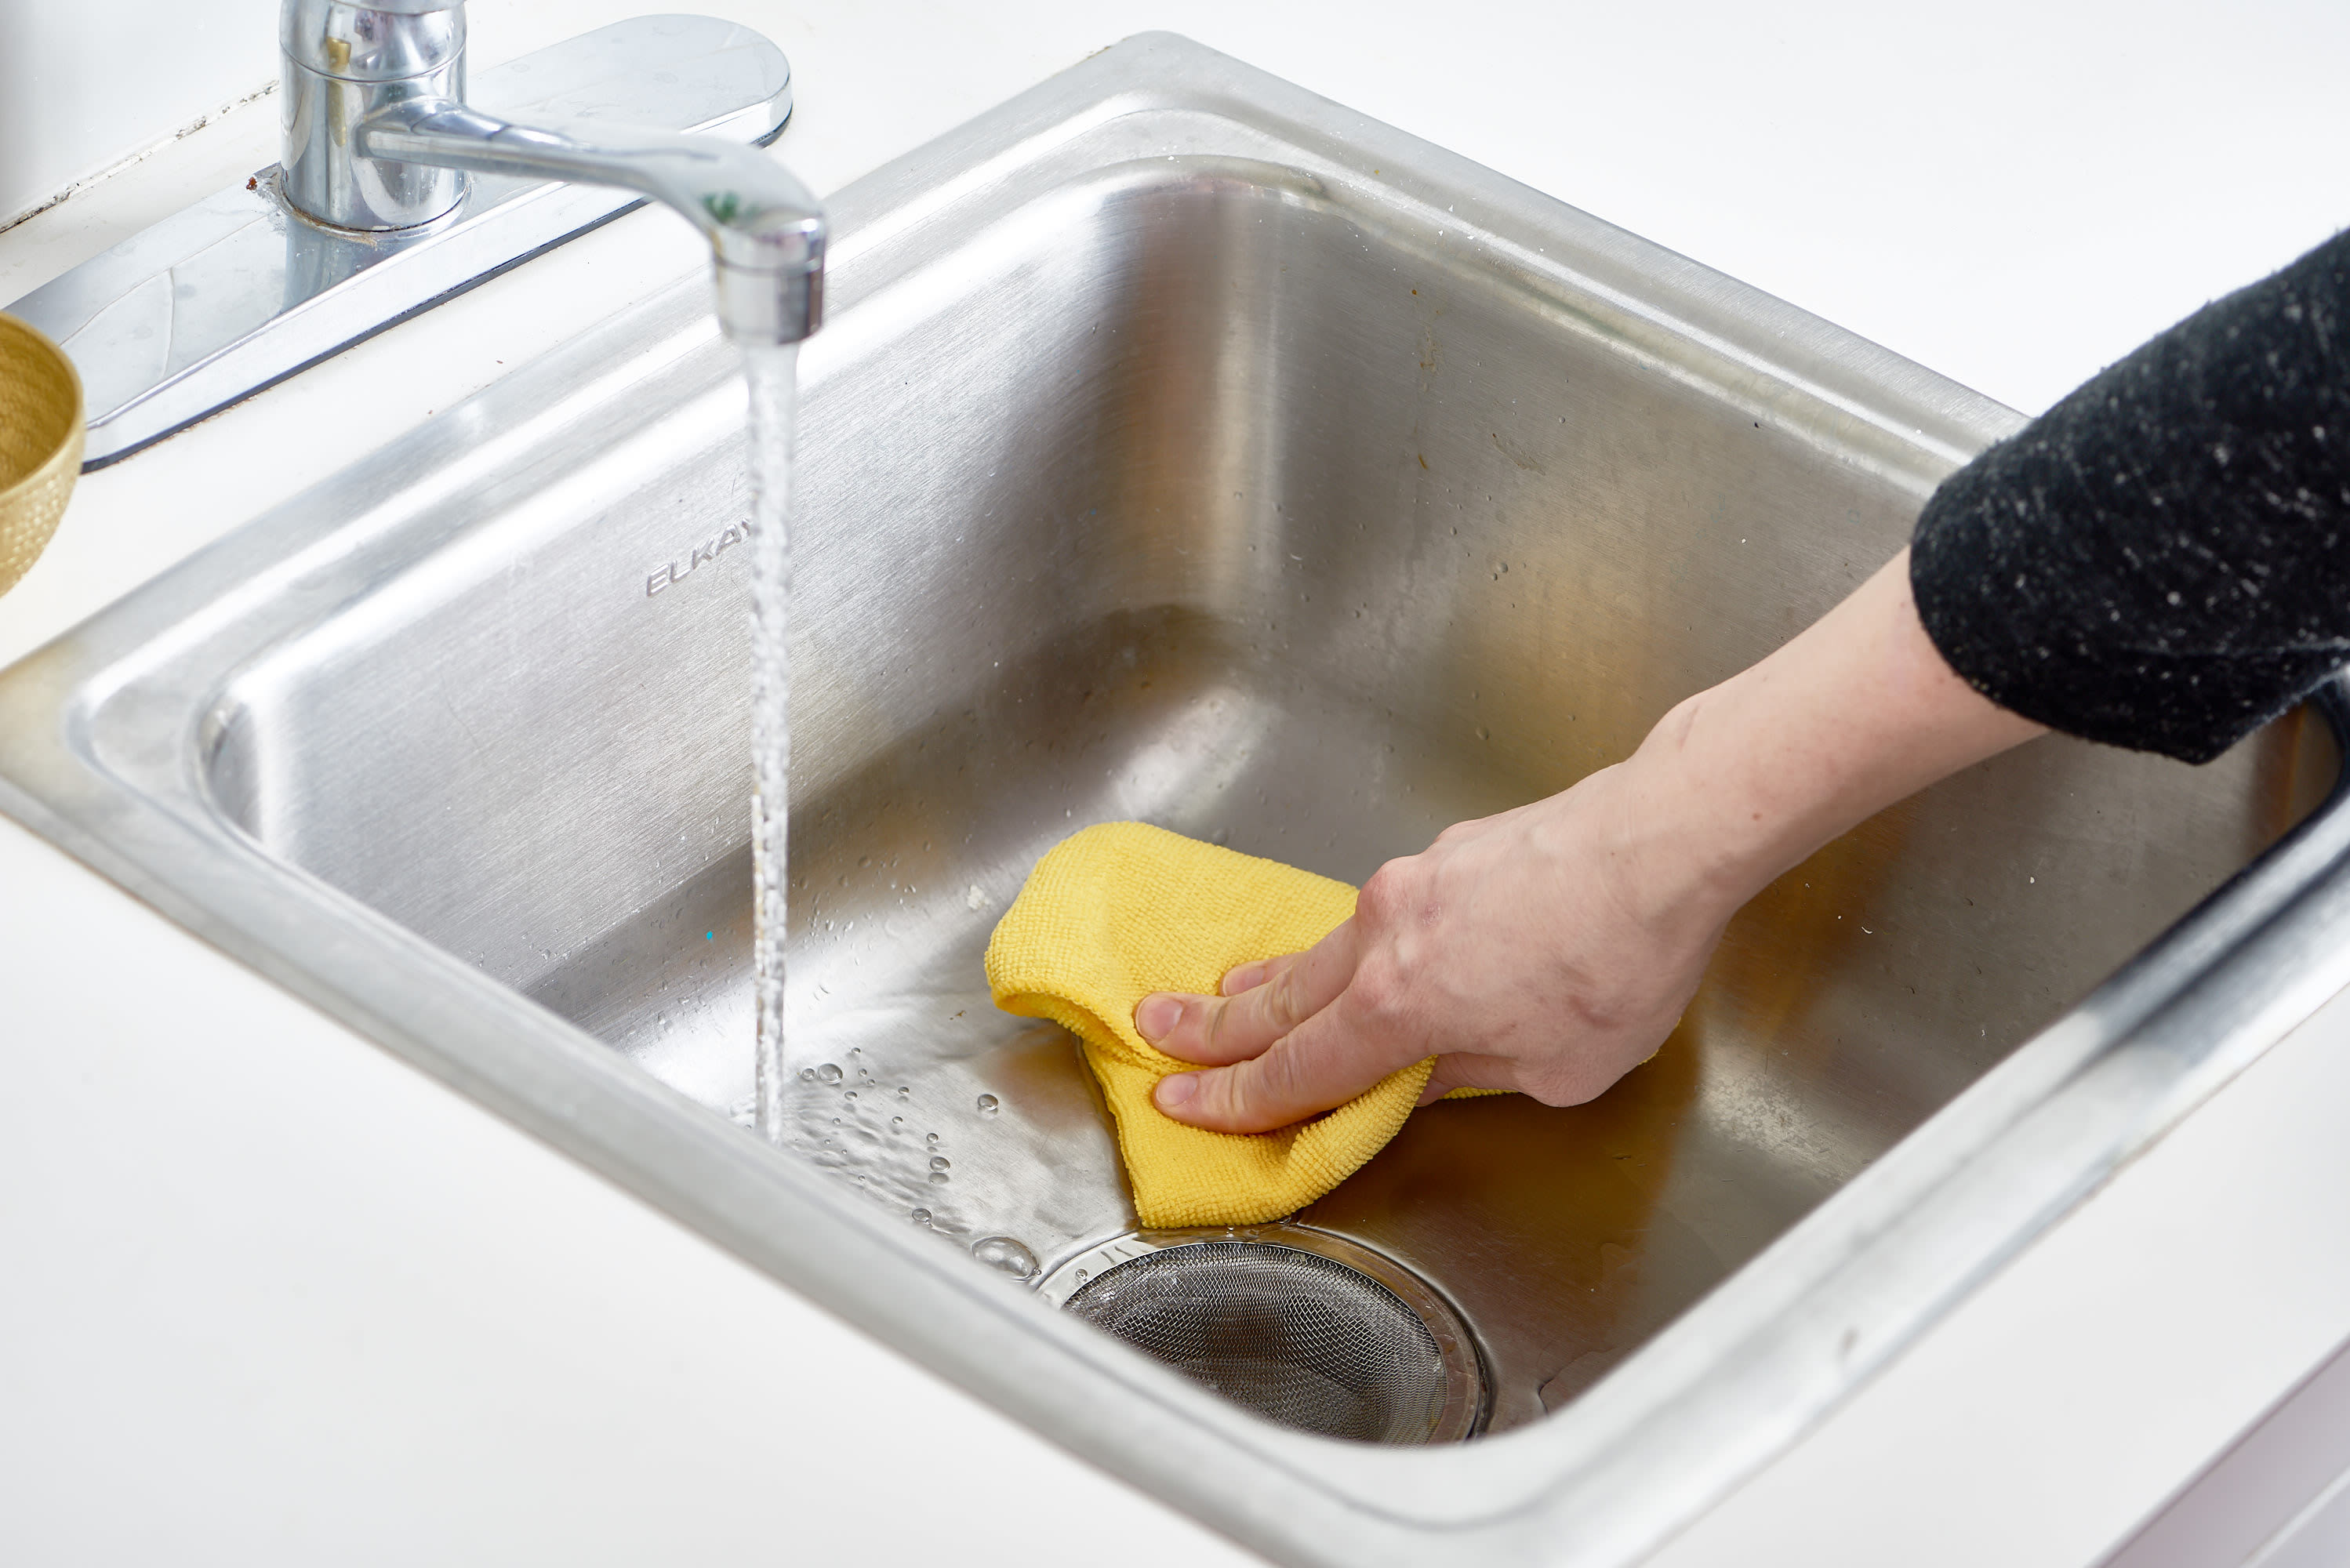 How To Polish A Stainless Steel Sink With Flour (Yes, Flour!):